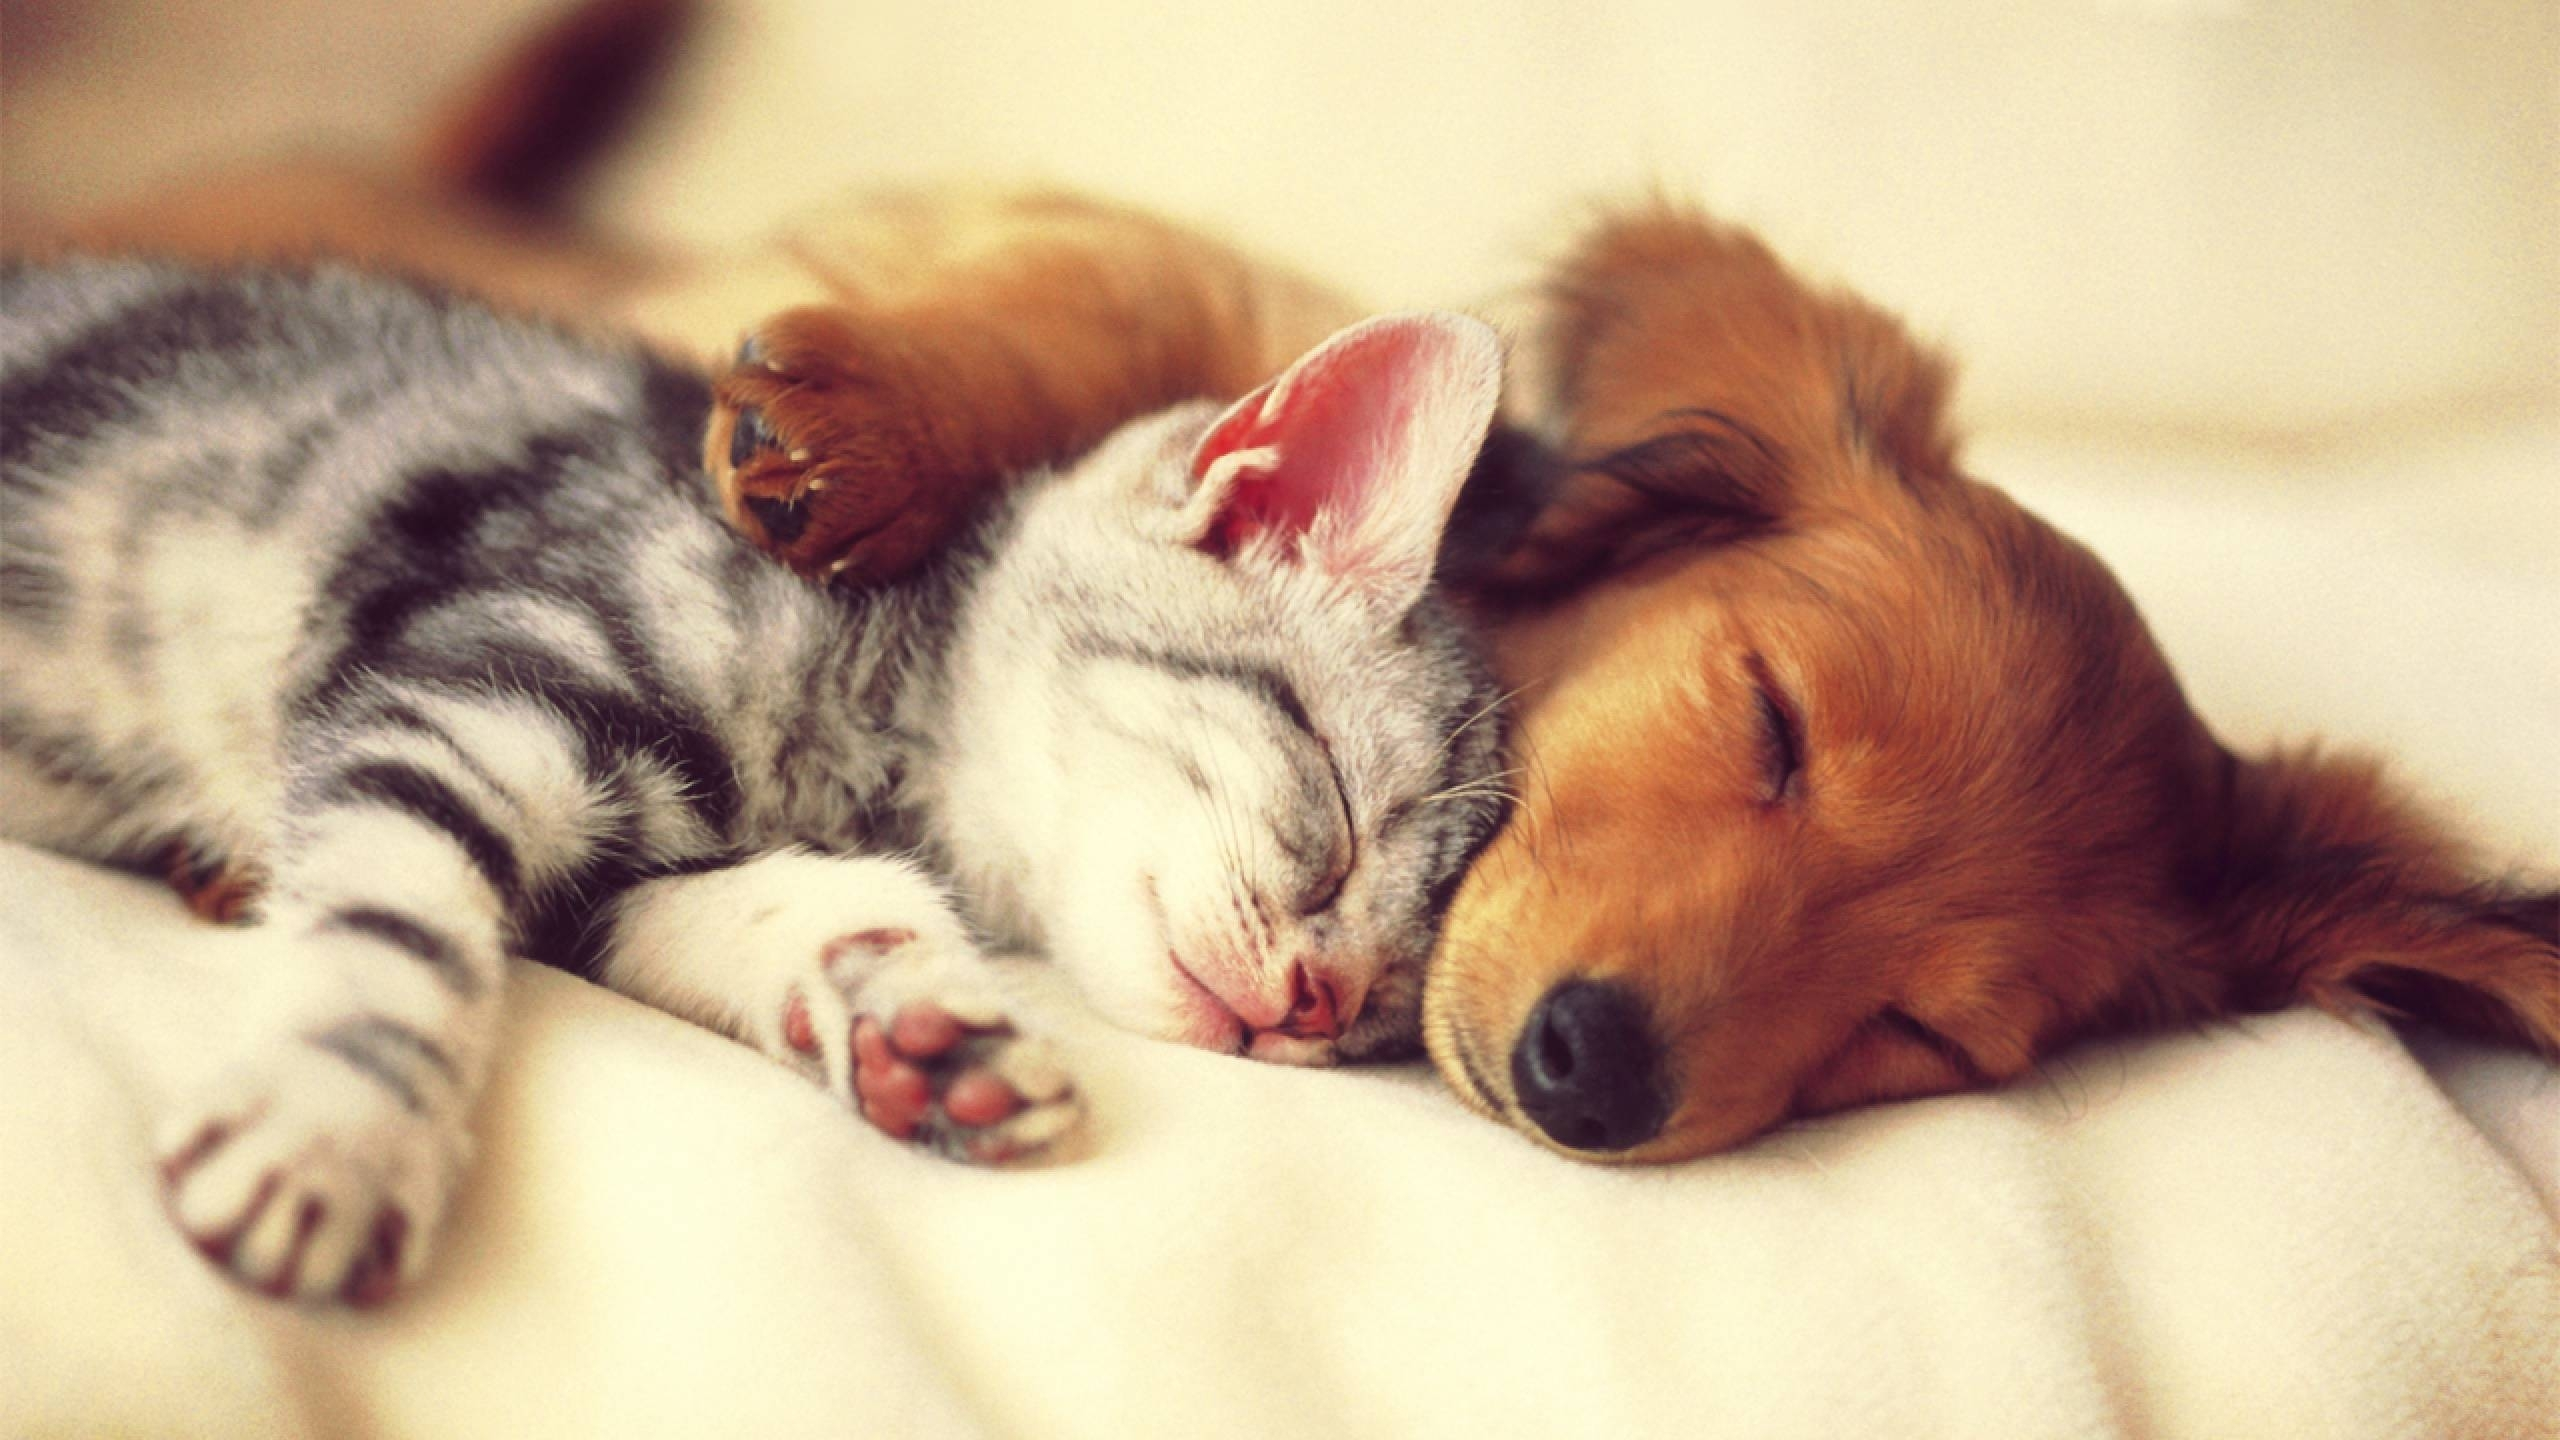 free dog and cat wallpapers photo « long wallpapers